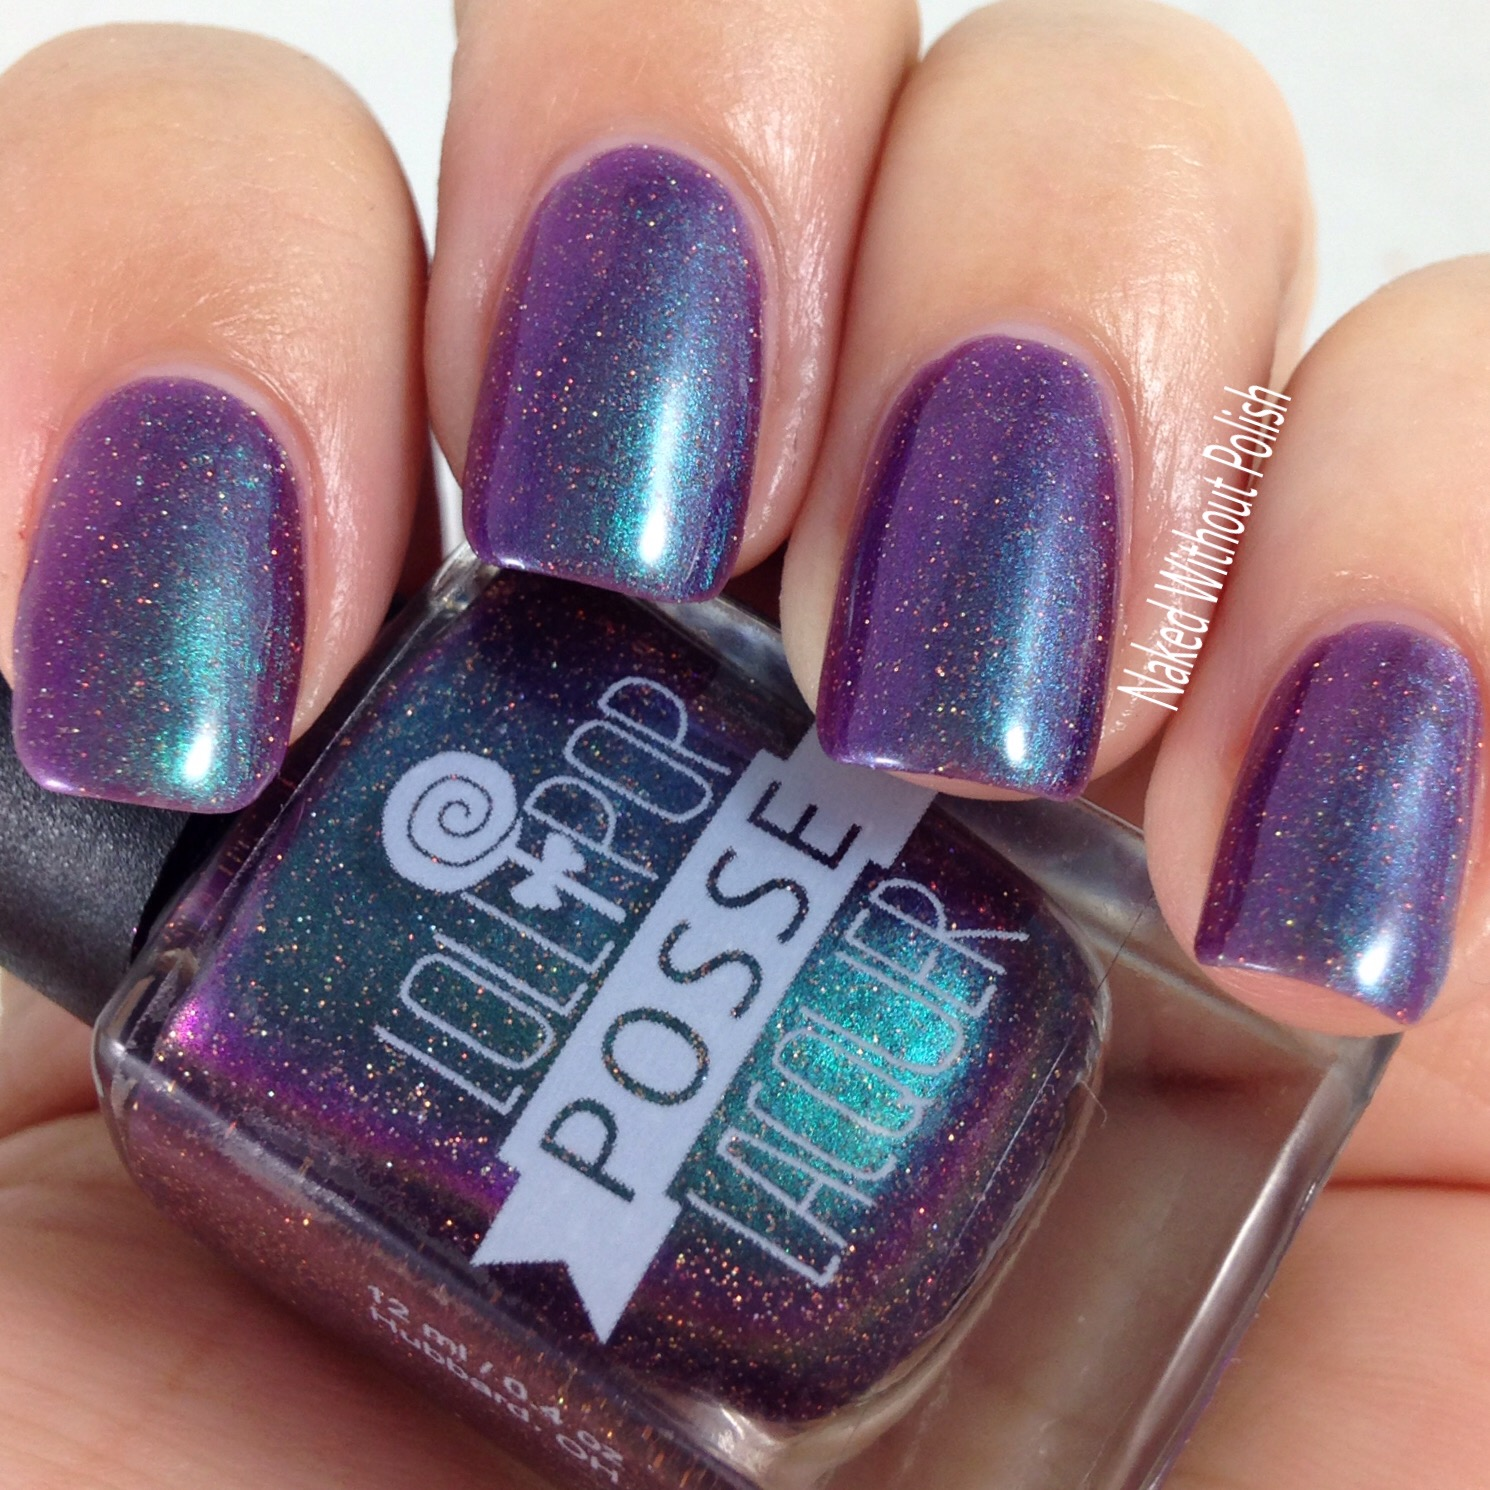 Polish-Pickup-Lollipop-Posse-Lacquer-Film-Noir-6